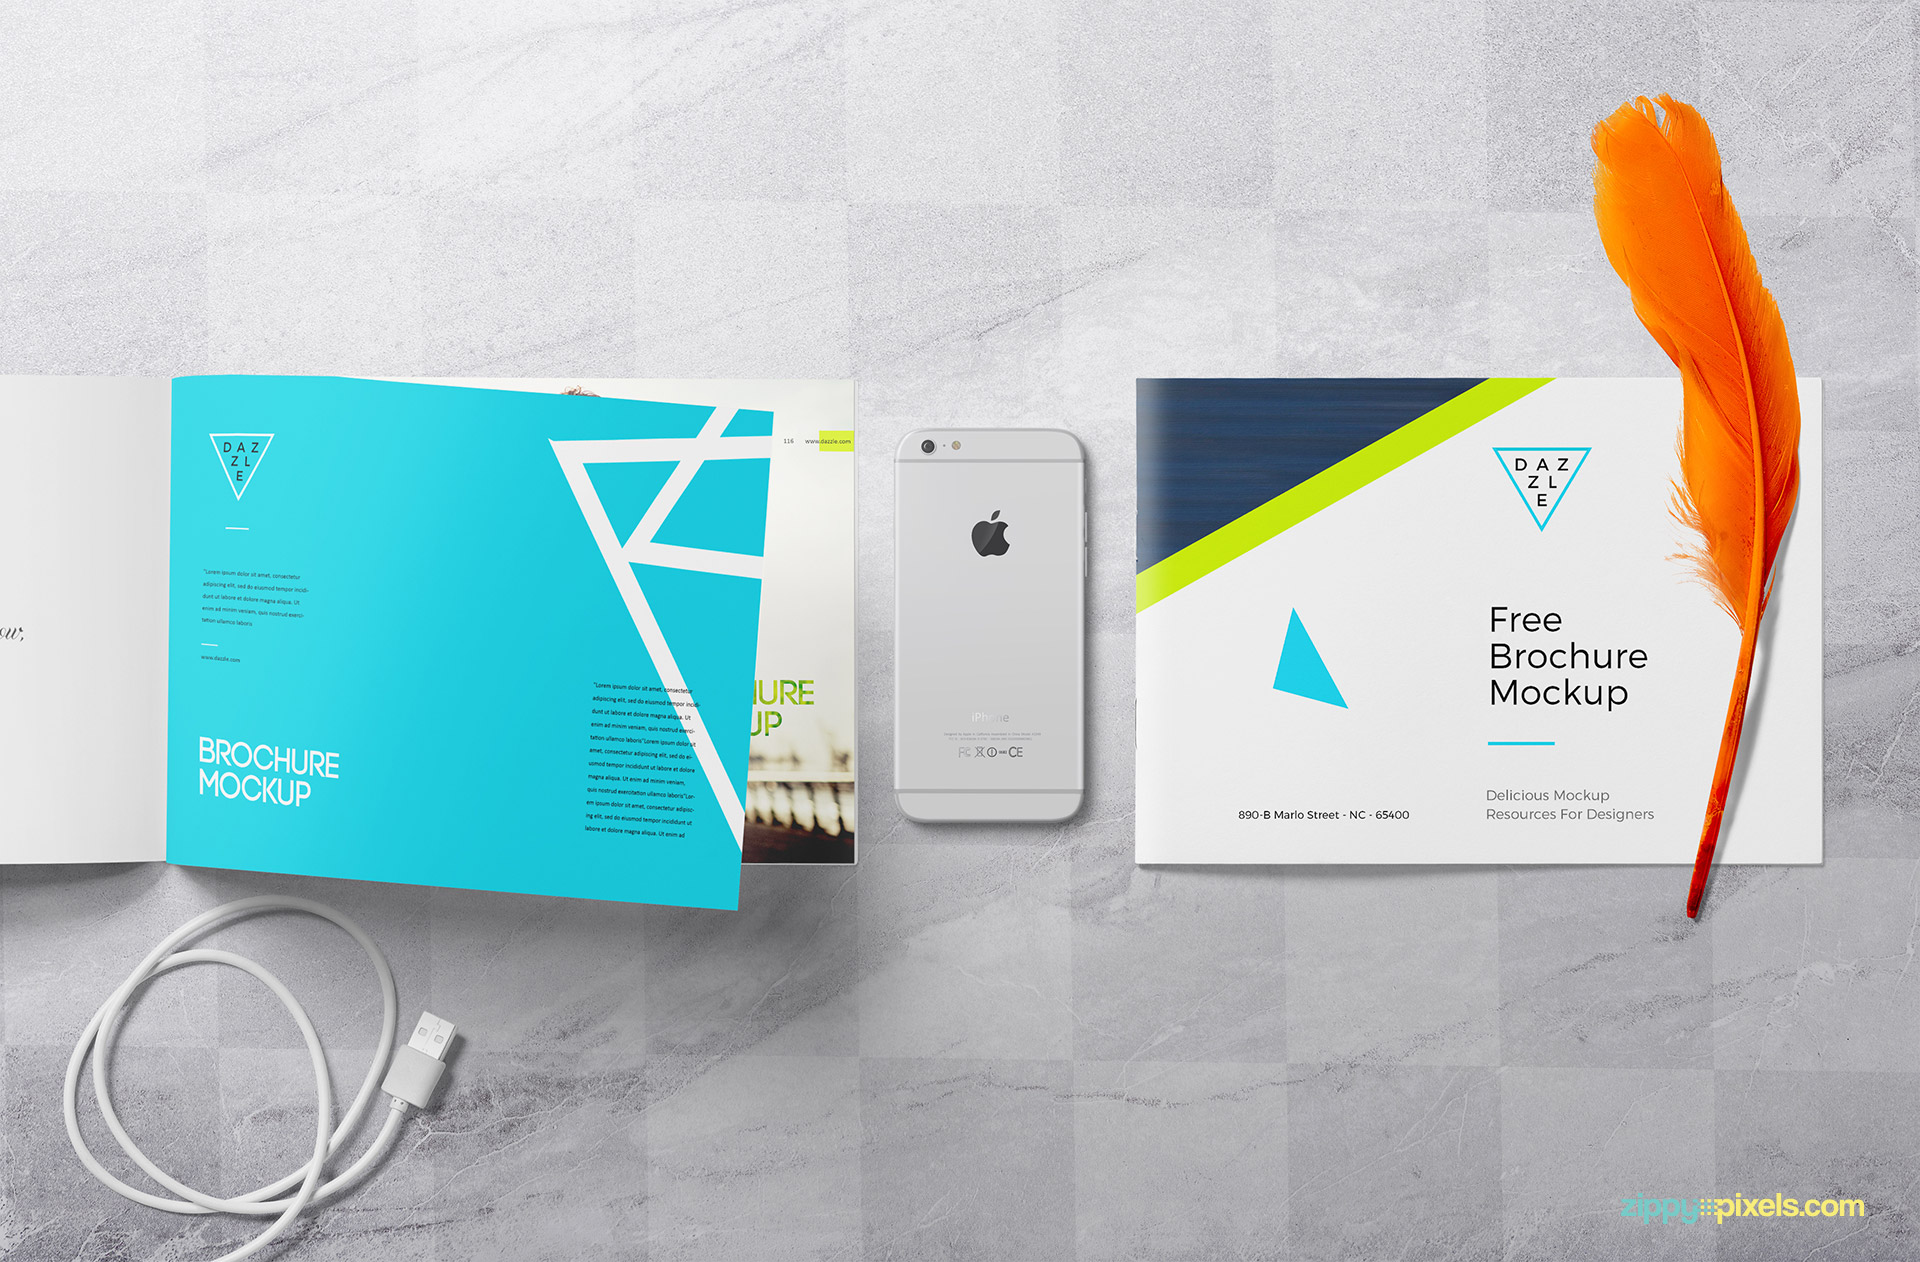 Free brochure mockup scene with iPhone, feather and data cable.